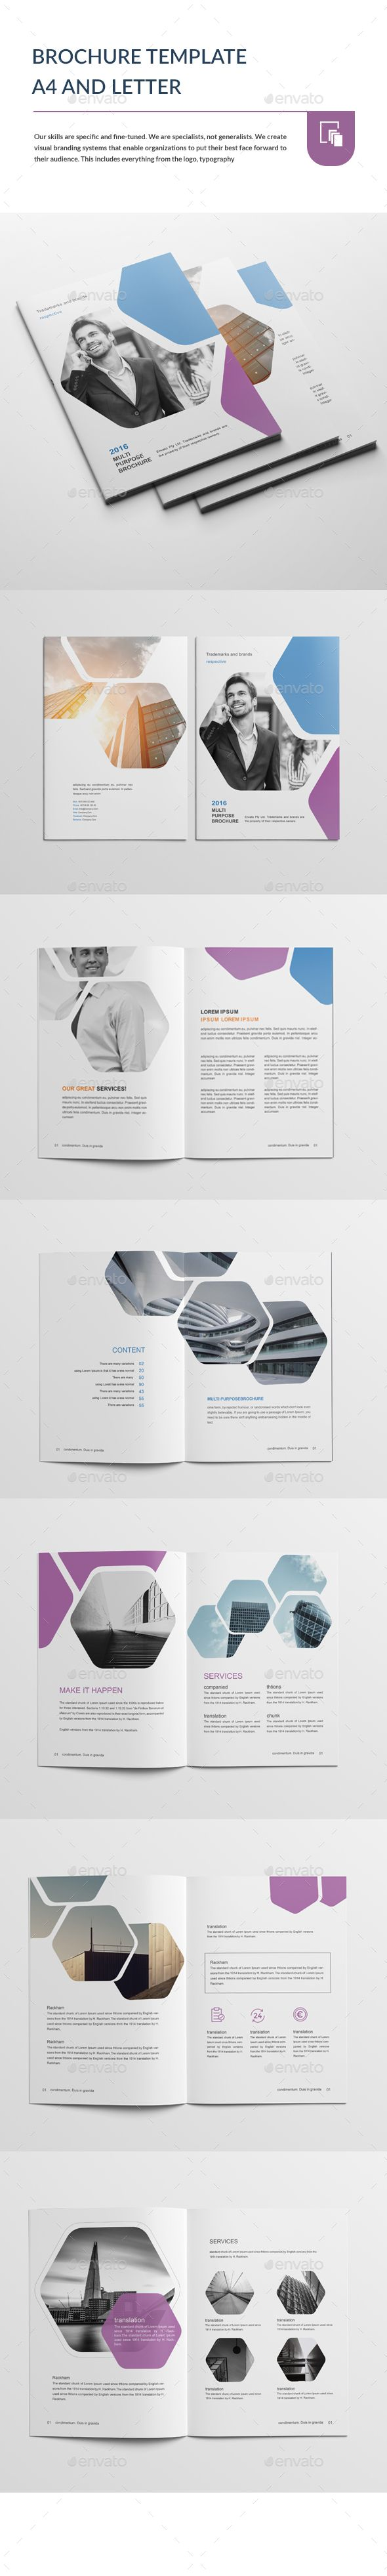 Brochure Template A4 and Letter | Folletos, Diseño editorial y Catálogo